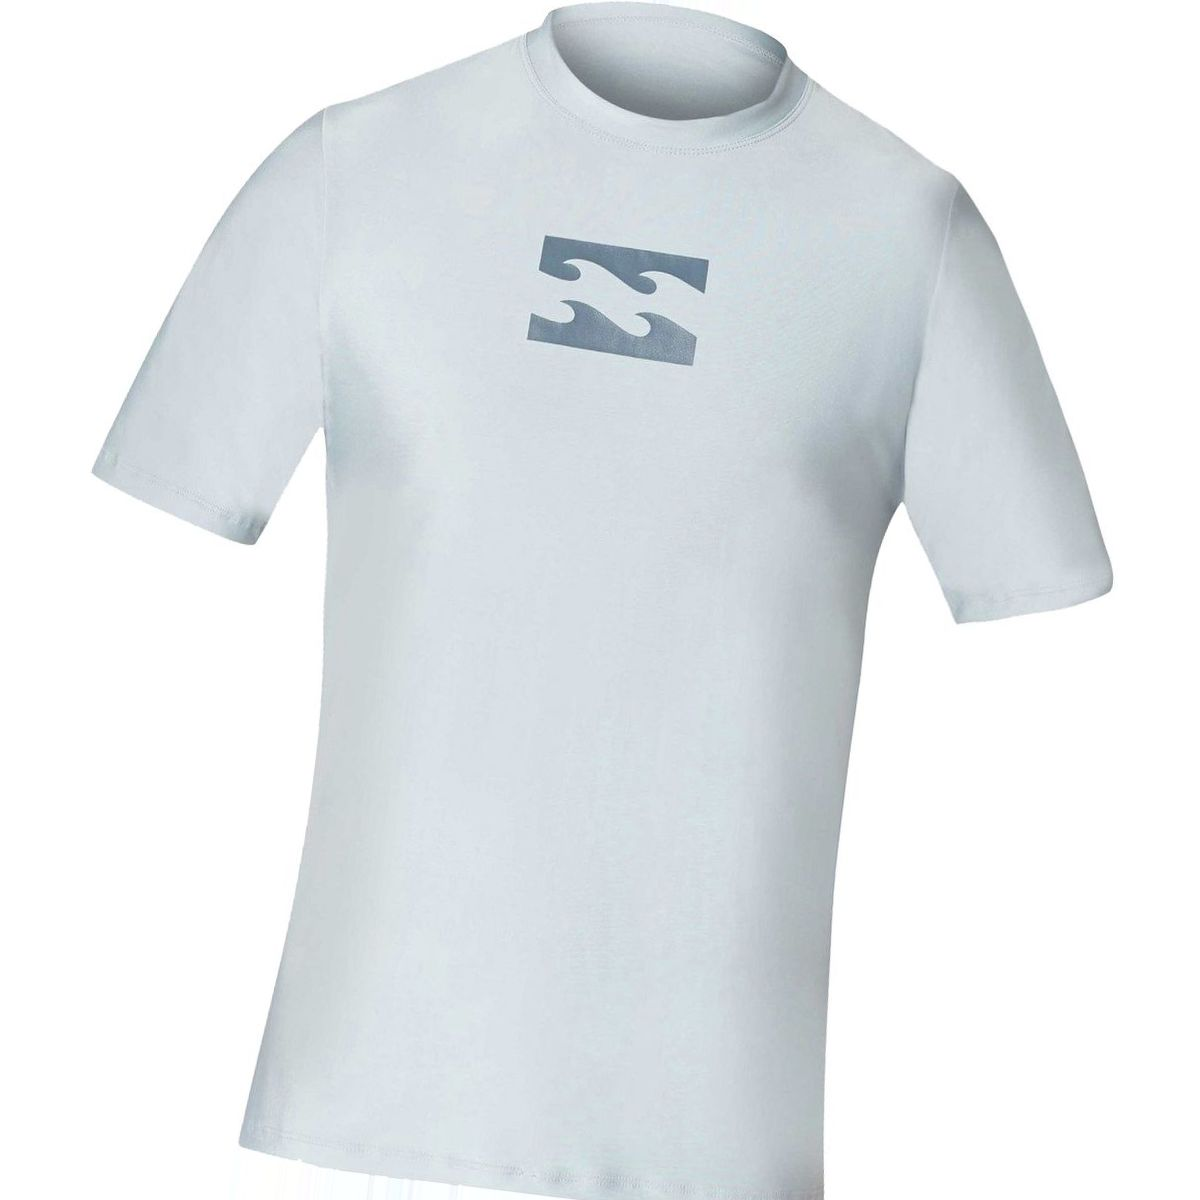 Billabong All Day Wave LF Short-Sleeve Rashguard - Boys'